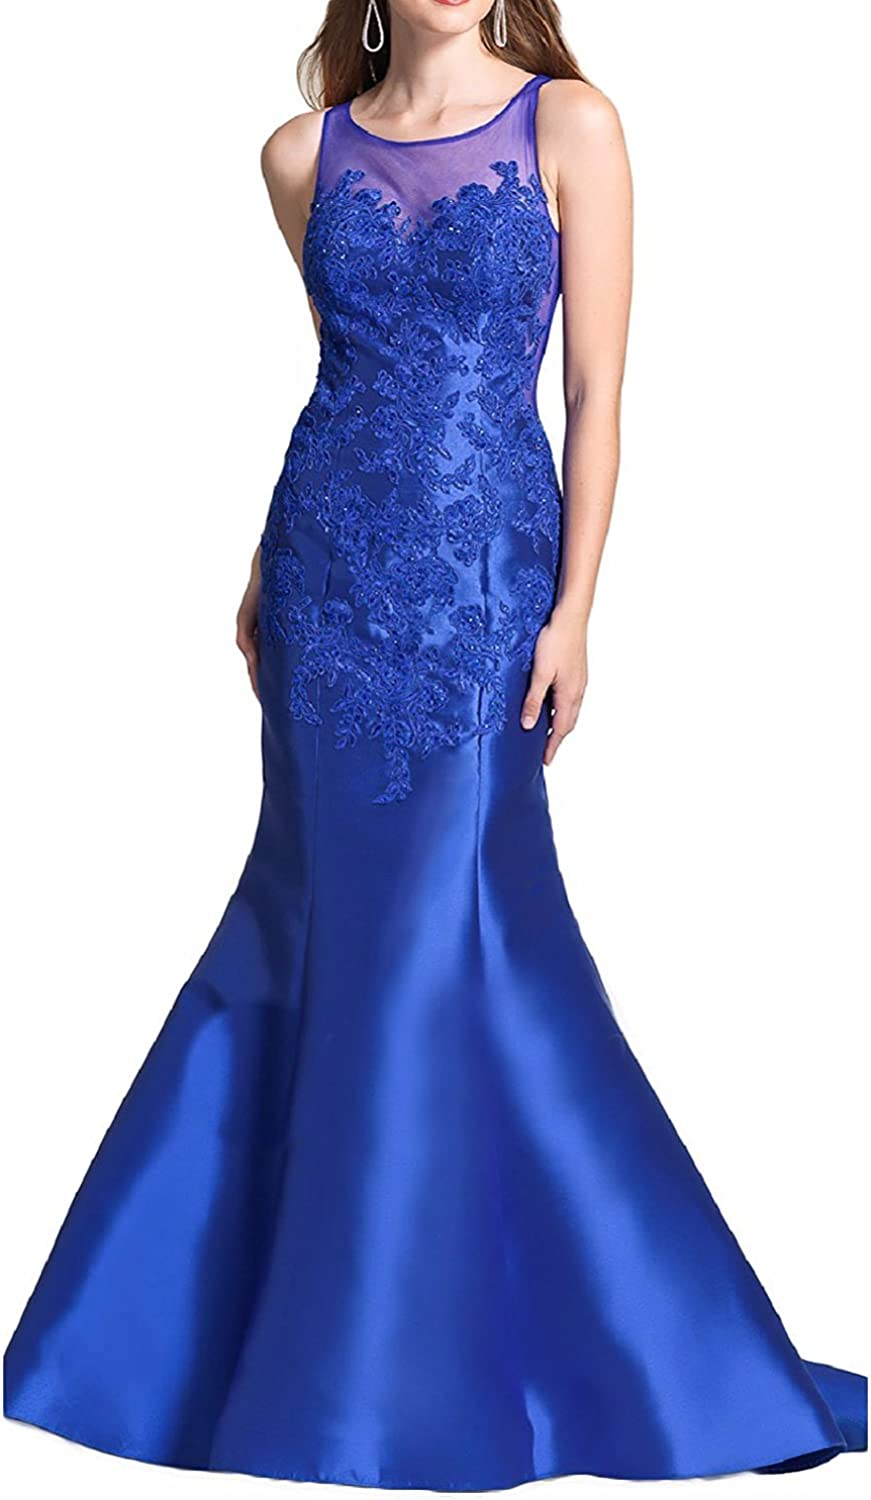 LL Bridal Women's Mermaid Beaded Prom Dresses with Train Embroidery Evening Formal Gown Long 2018 LLP078